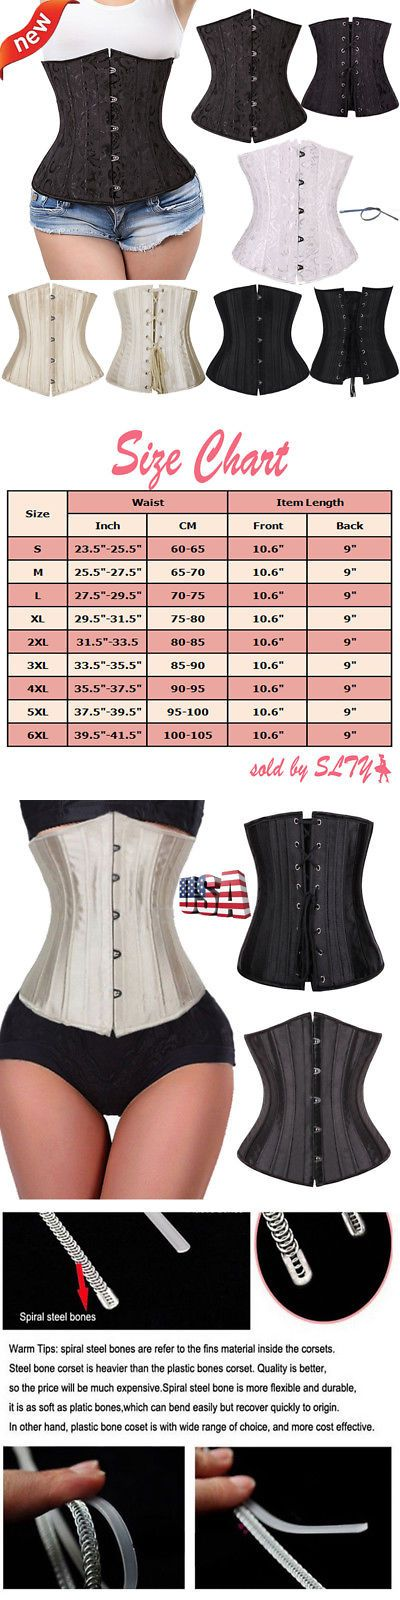 c5557480956 Corsets and Bustiers 11522  Black 24 Spiral Steel Boned Waist Training  Underbust Lace Up Corset Top Shaper -  BUY IT NOW ONLY   15.49 on eBay!